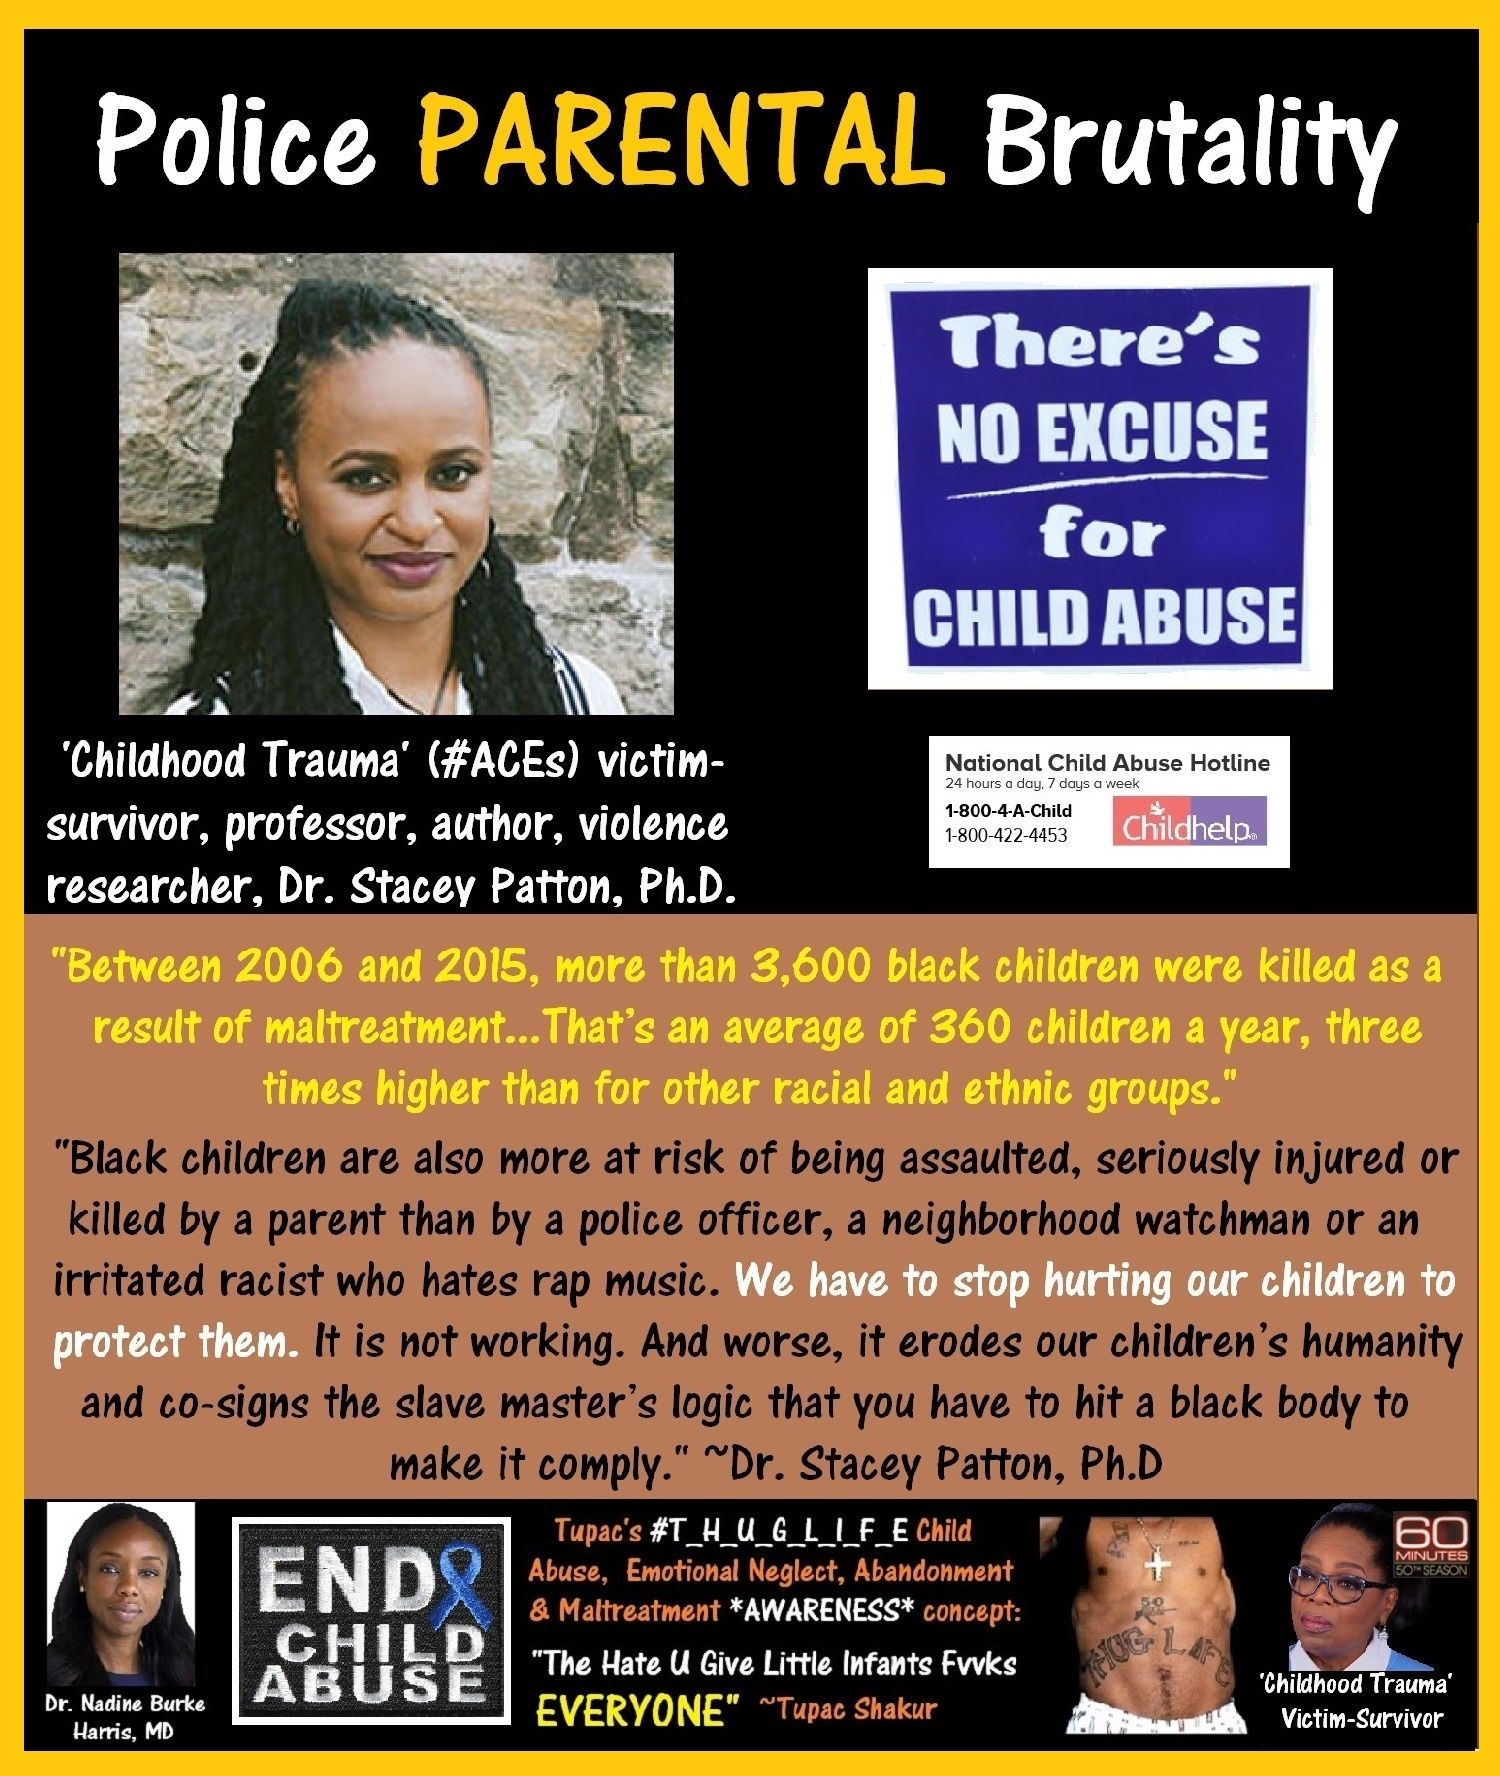 dr stacey patton police parental britality.jpg